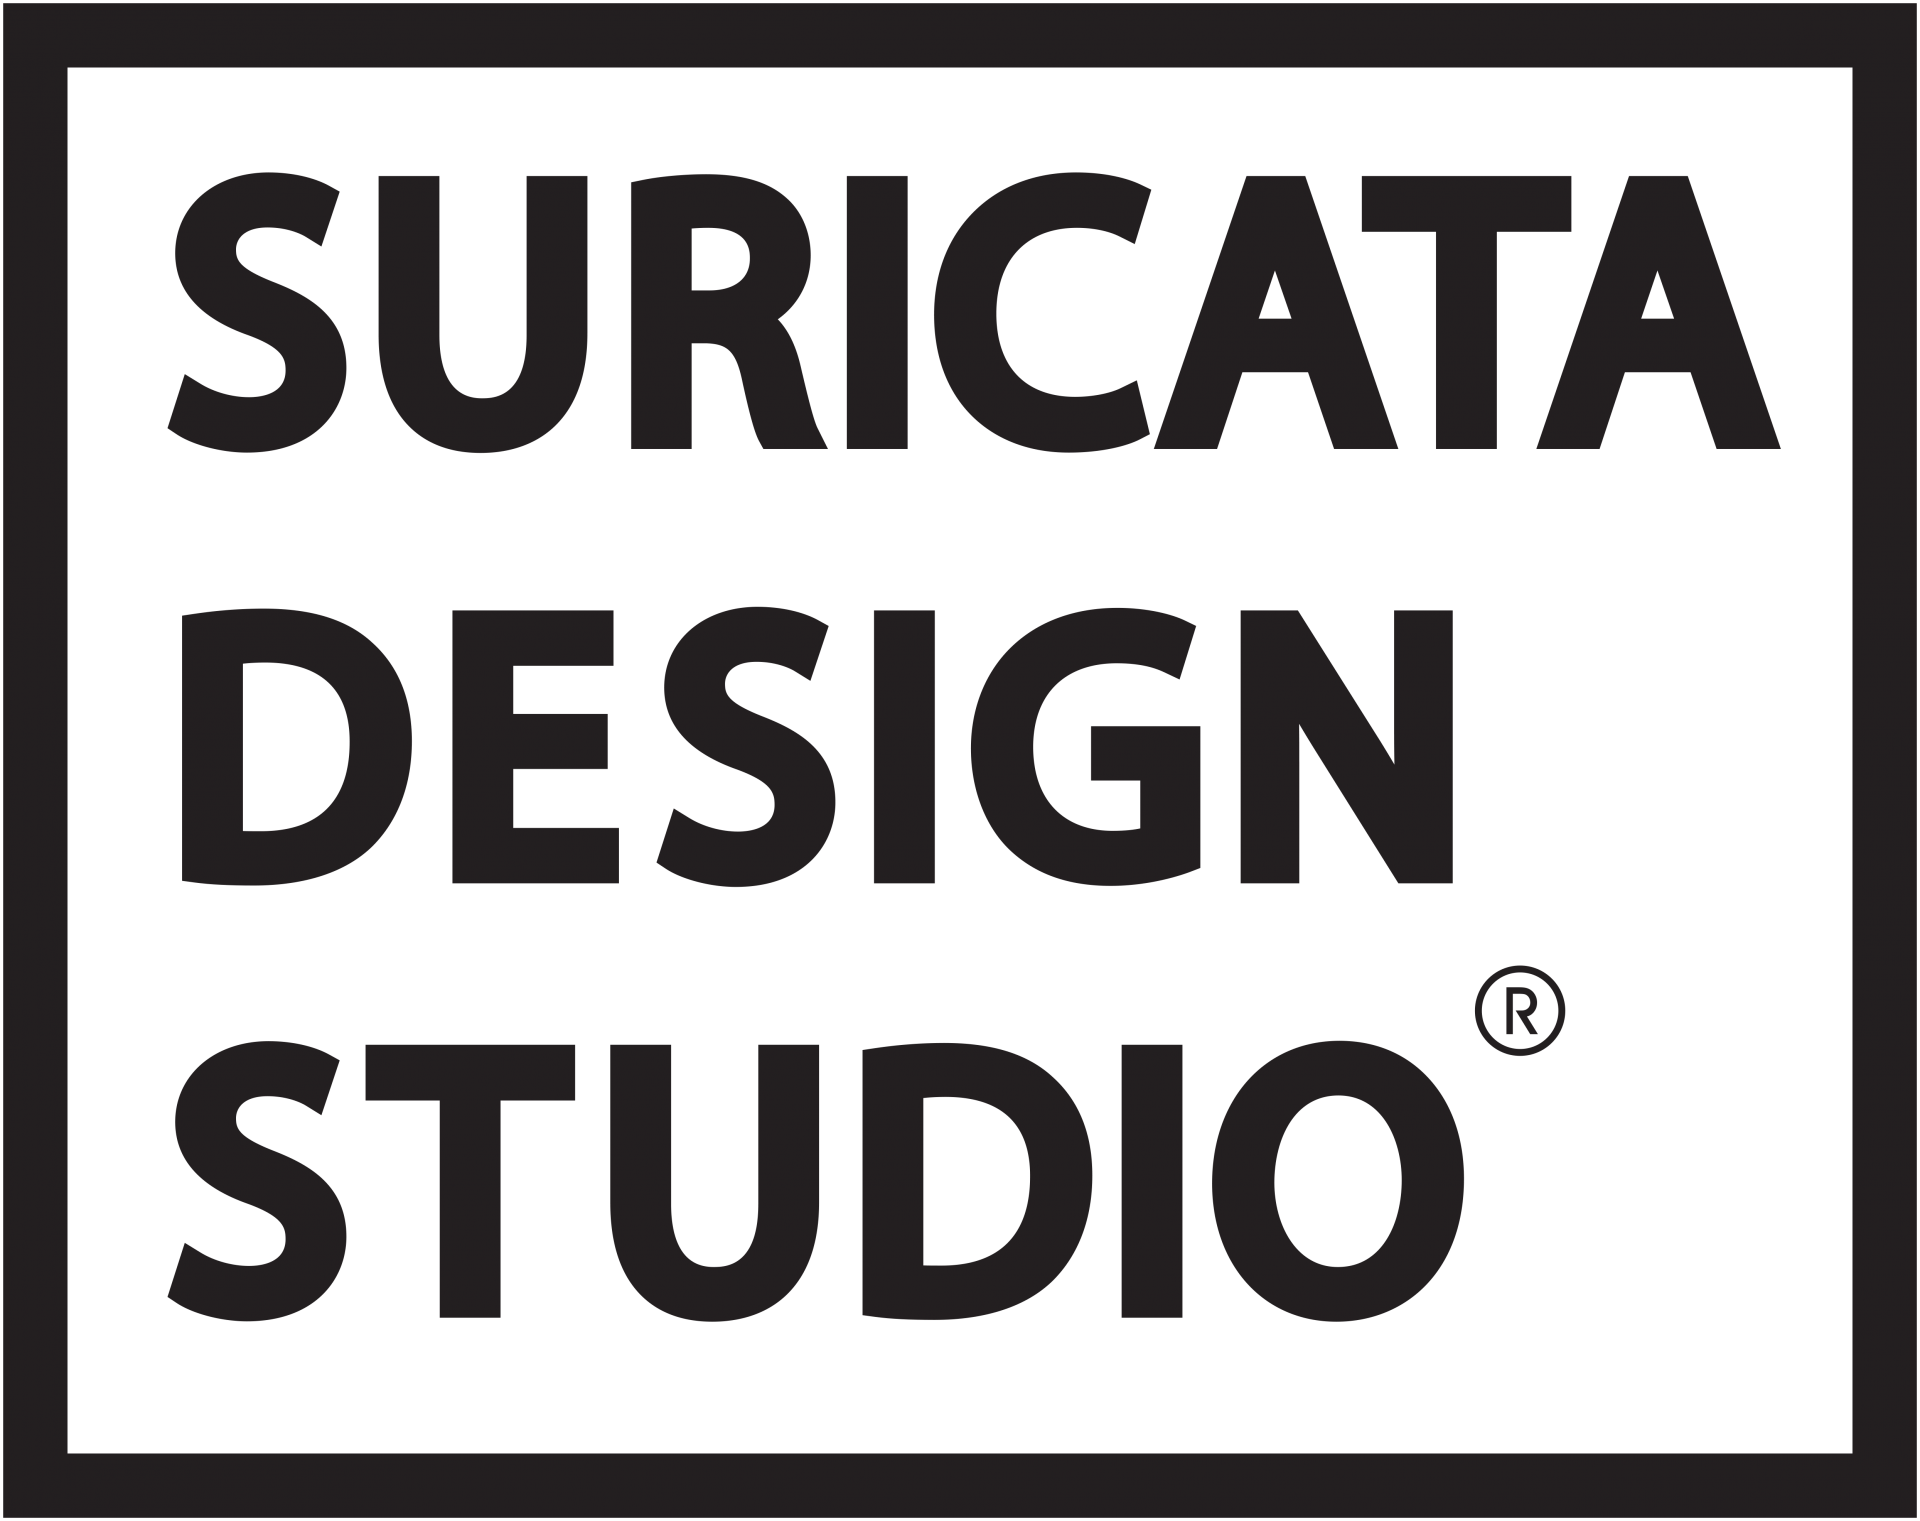 Suricata Design Studio